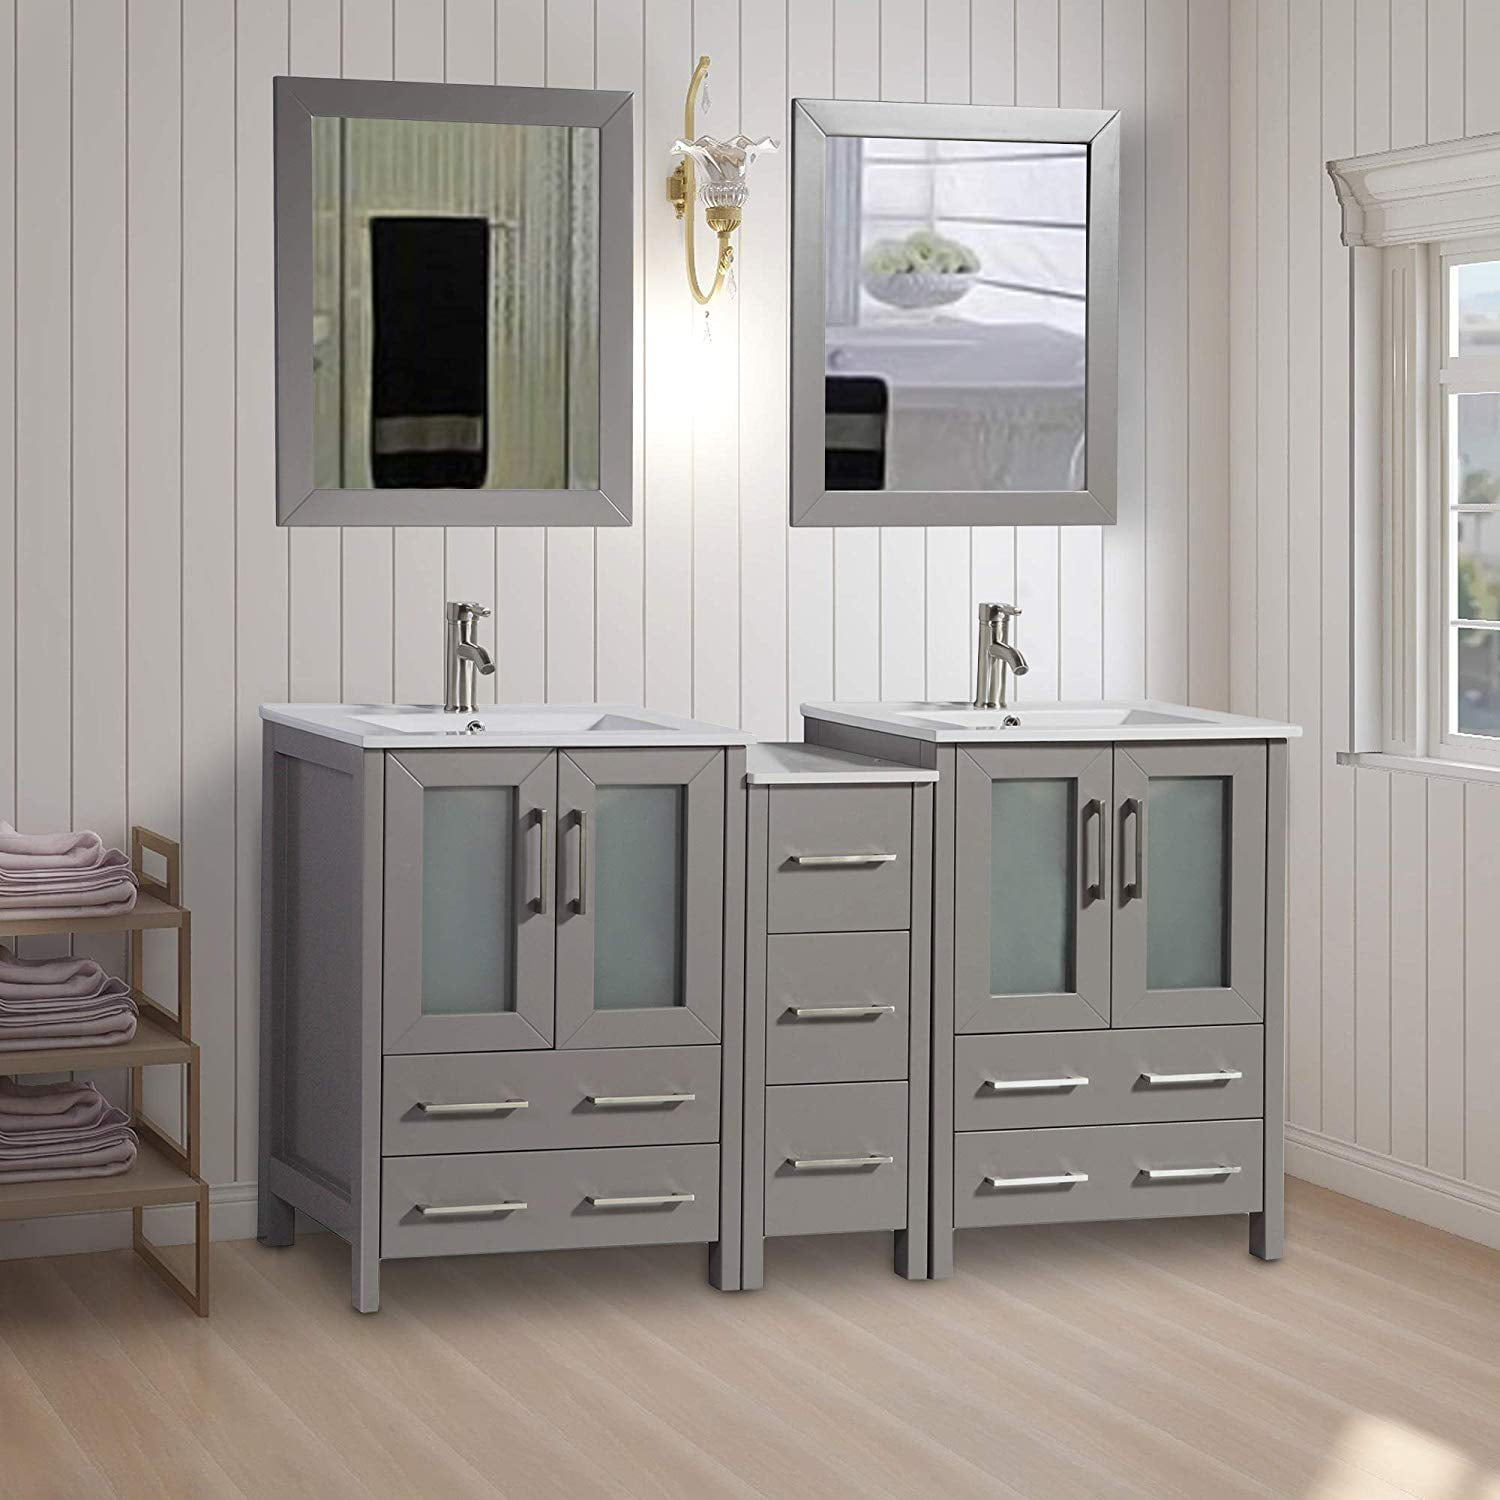 Vanity Art 60 Double Sink Bathroom Vanity Combo Set 7 Drawers 2 Shelves 3 Cabinets Ceramic Top Under Sink Cabinet With Mirror Va3024 60g Walmart Com Walmart Com